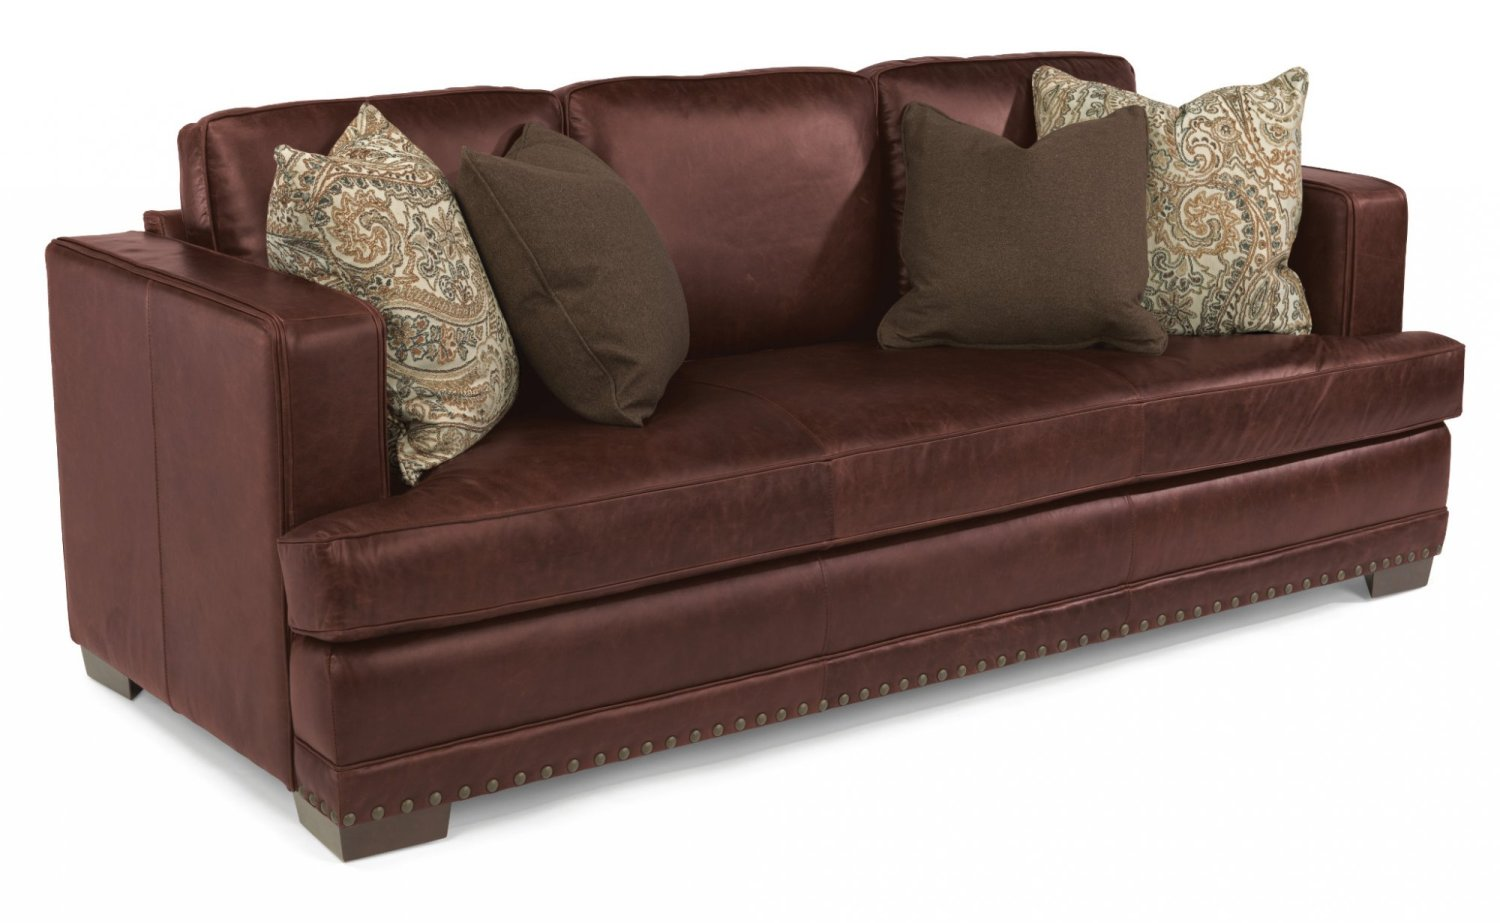 Studded leather sofa studded distressed leather sofa and for Studded leather sofa